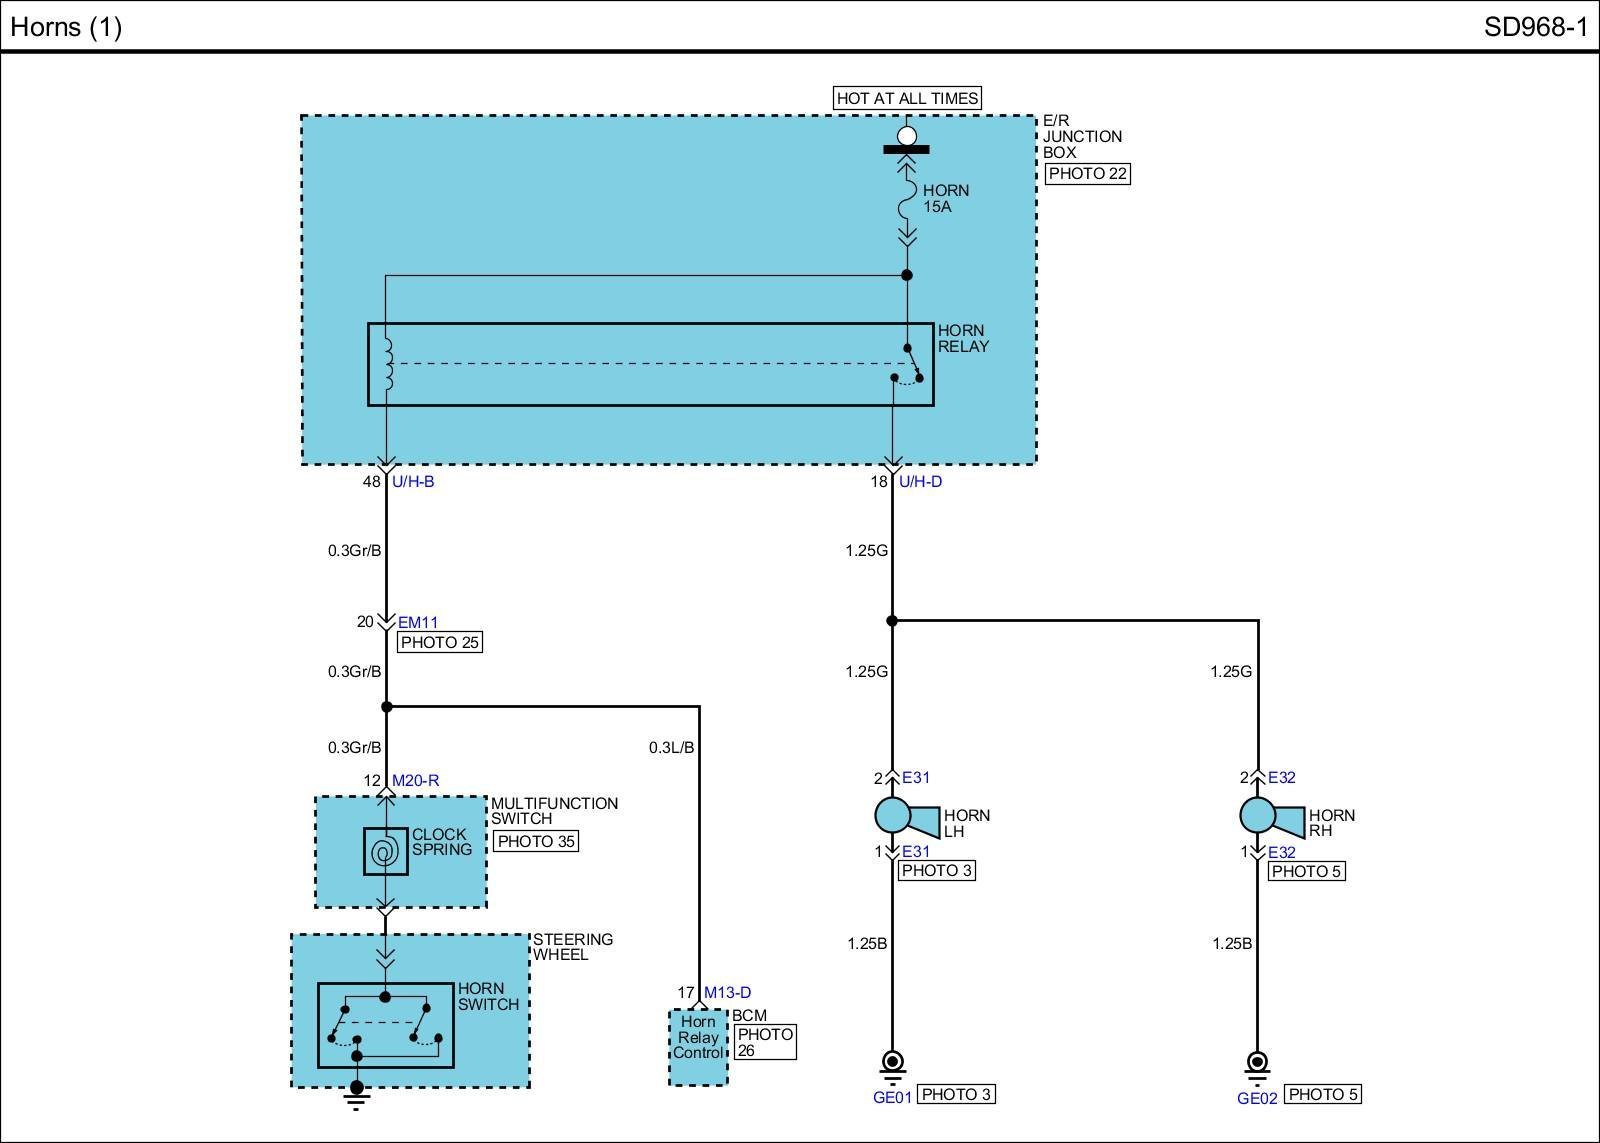 My Horn On 2012 Santa Fe Just Quit Working I Replaced The Fuse. If It Does Click Then Either The Relay Is Bad Or Horns Are Have A Connection From. Hyundai. Car Horn Wiring Diagram 2007 Hyundai Elantra At Scoala.co